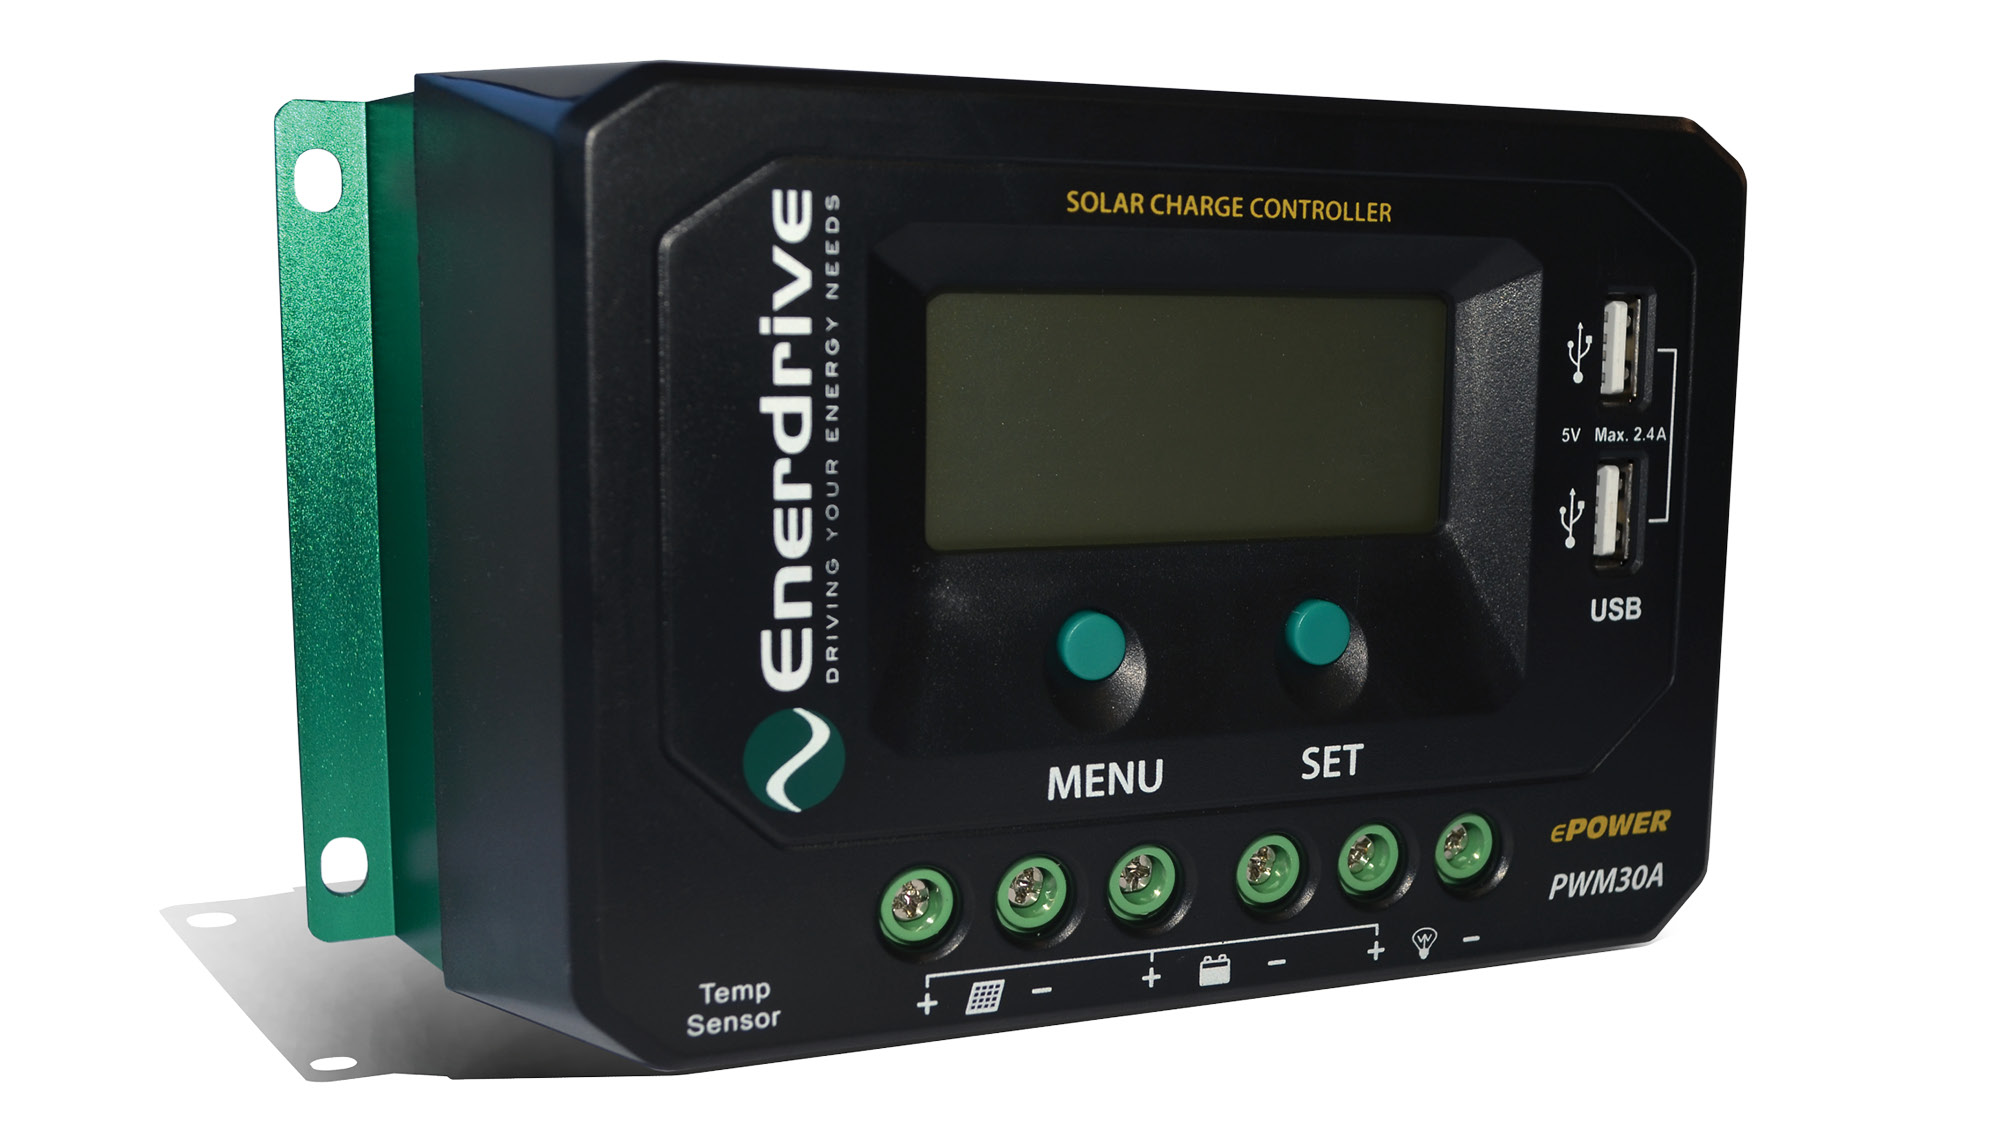 Overcharging can reduce the life of your solar battery – the Enerdrive ePower PWM Solar Charge Controller